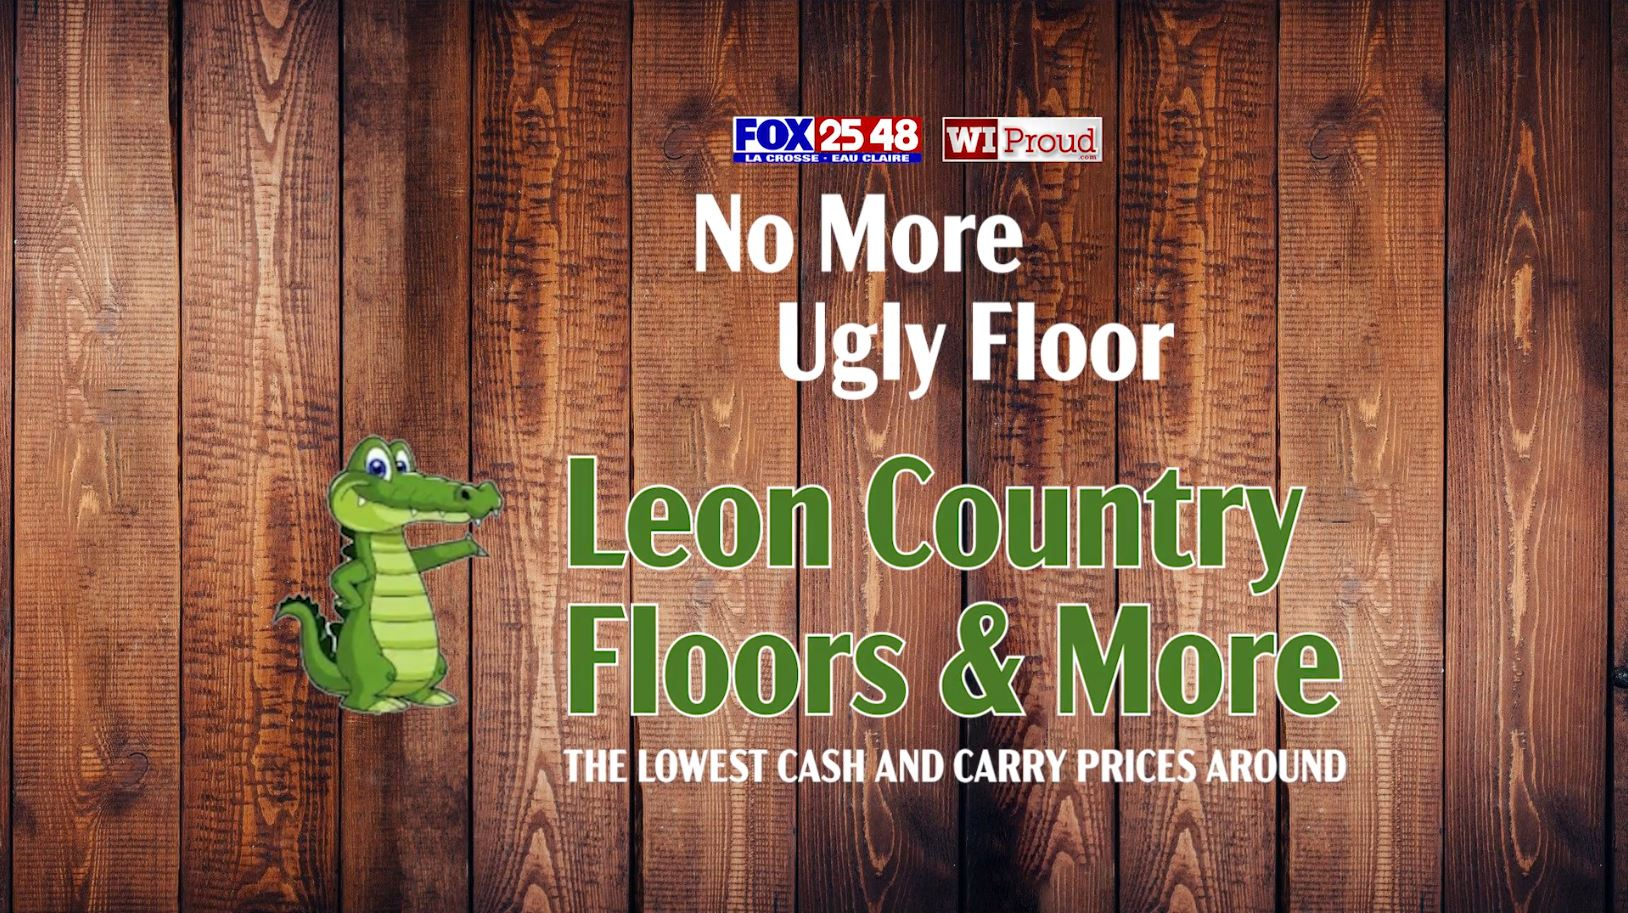 Leon Country Floors No More Ugly Floors